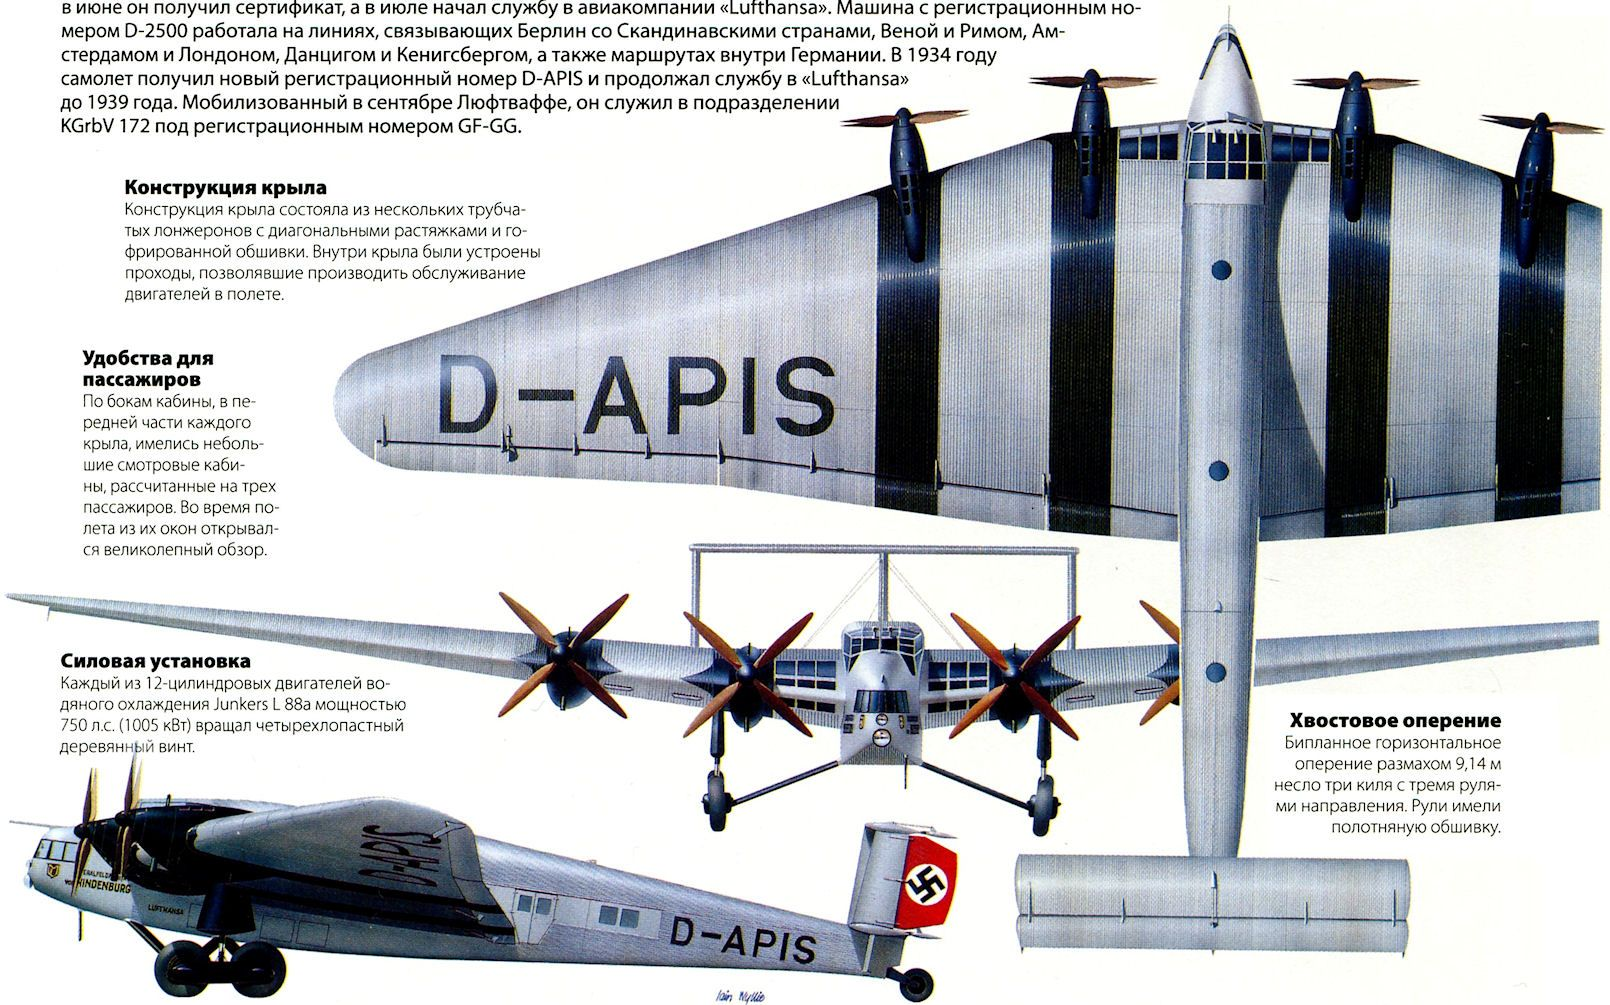 germany nazi junkers g 38 airplane illustration pinterest. Black Bedroom Furniture Sets. Home Design Ideas